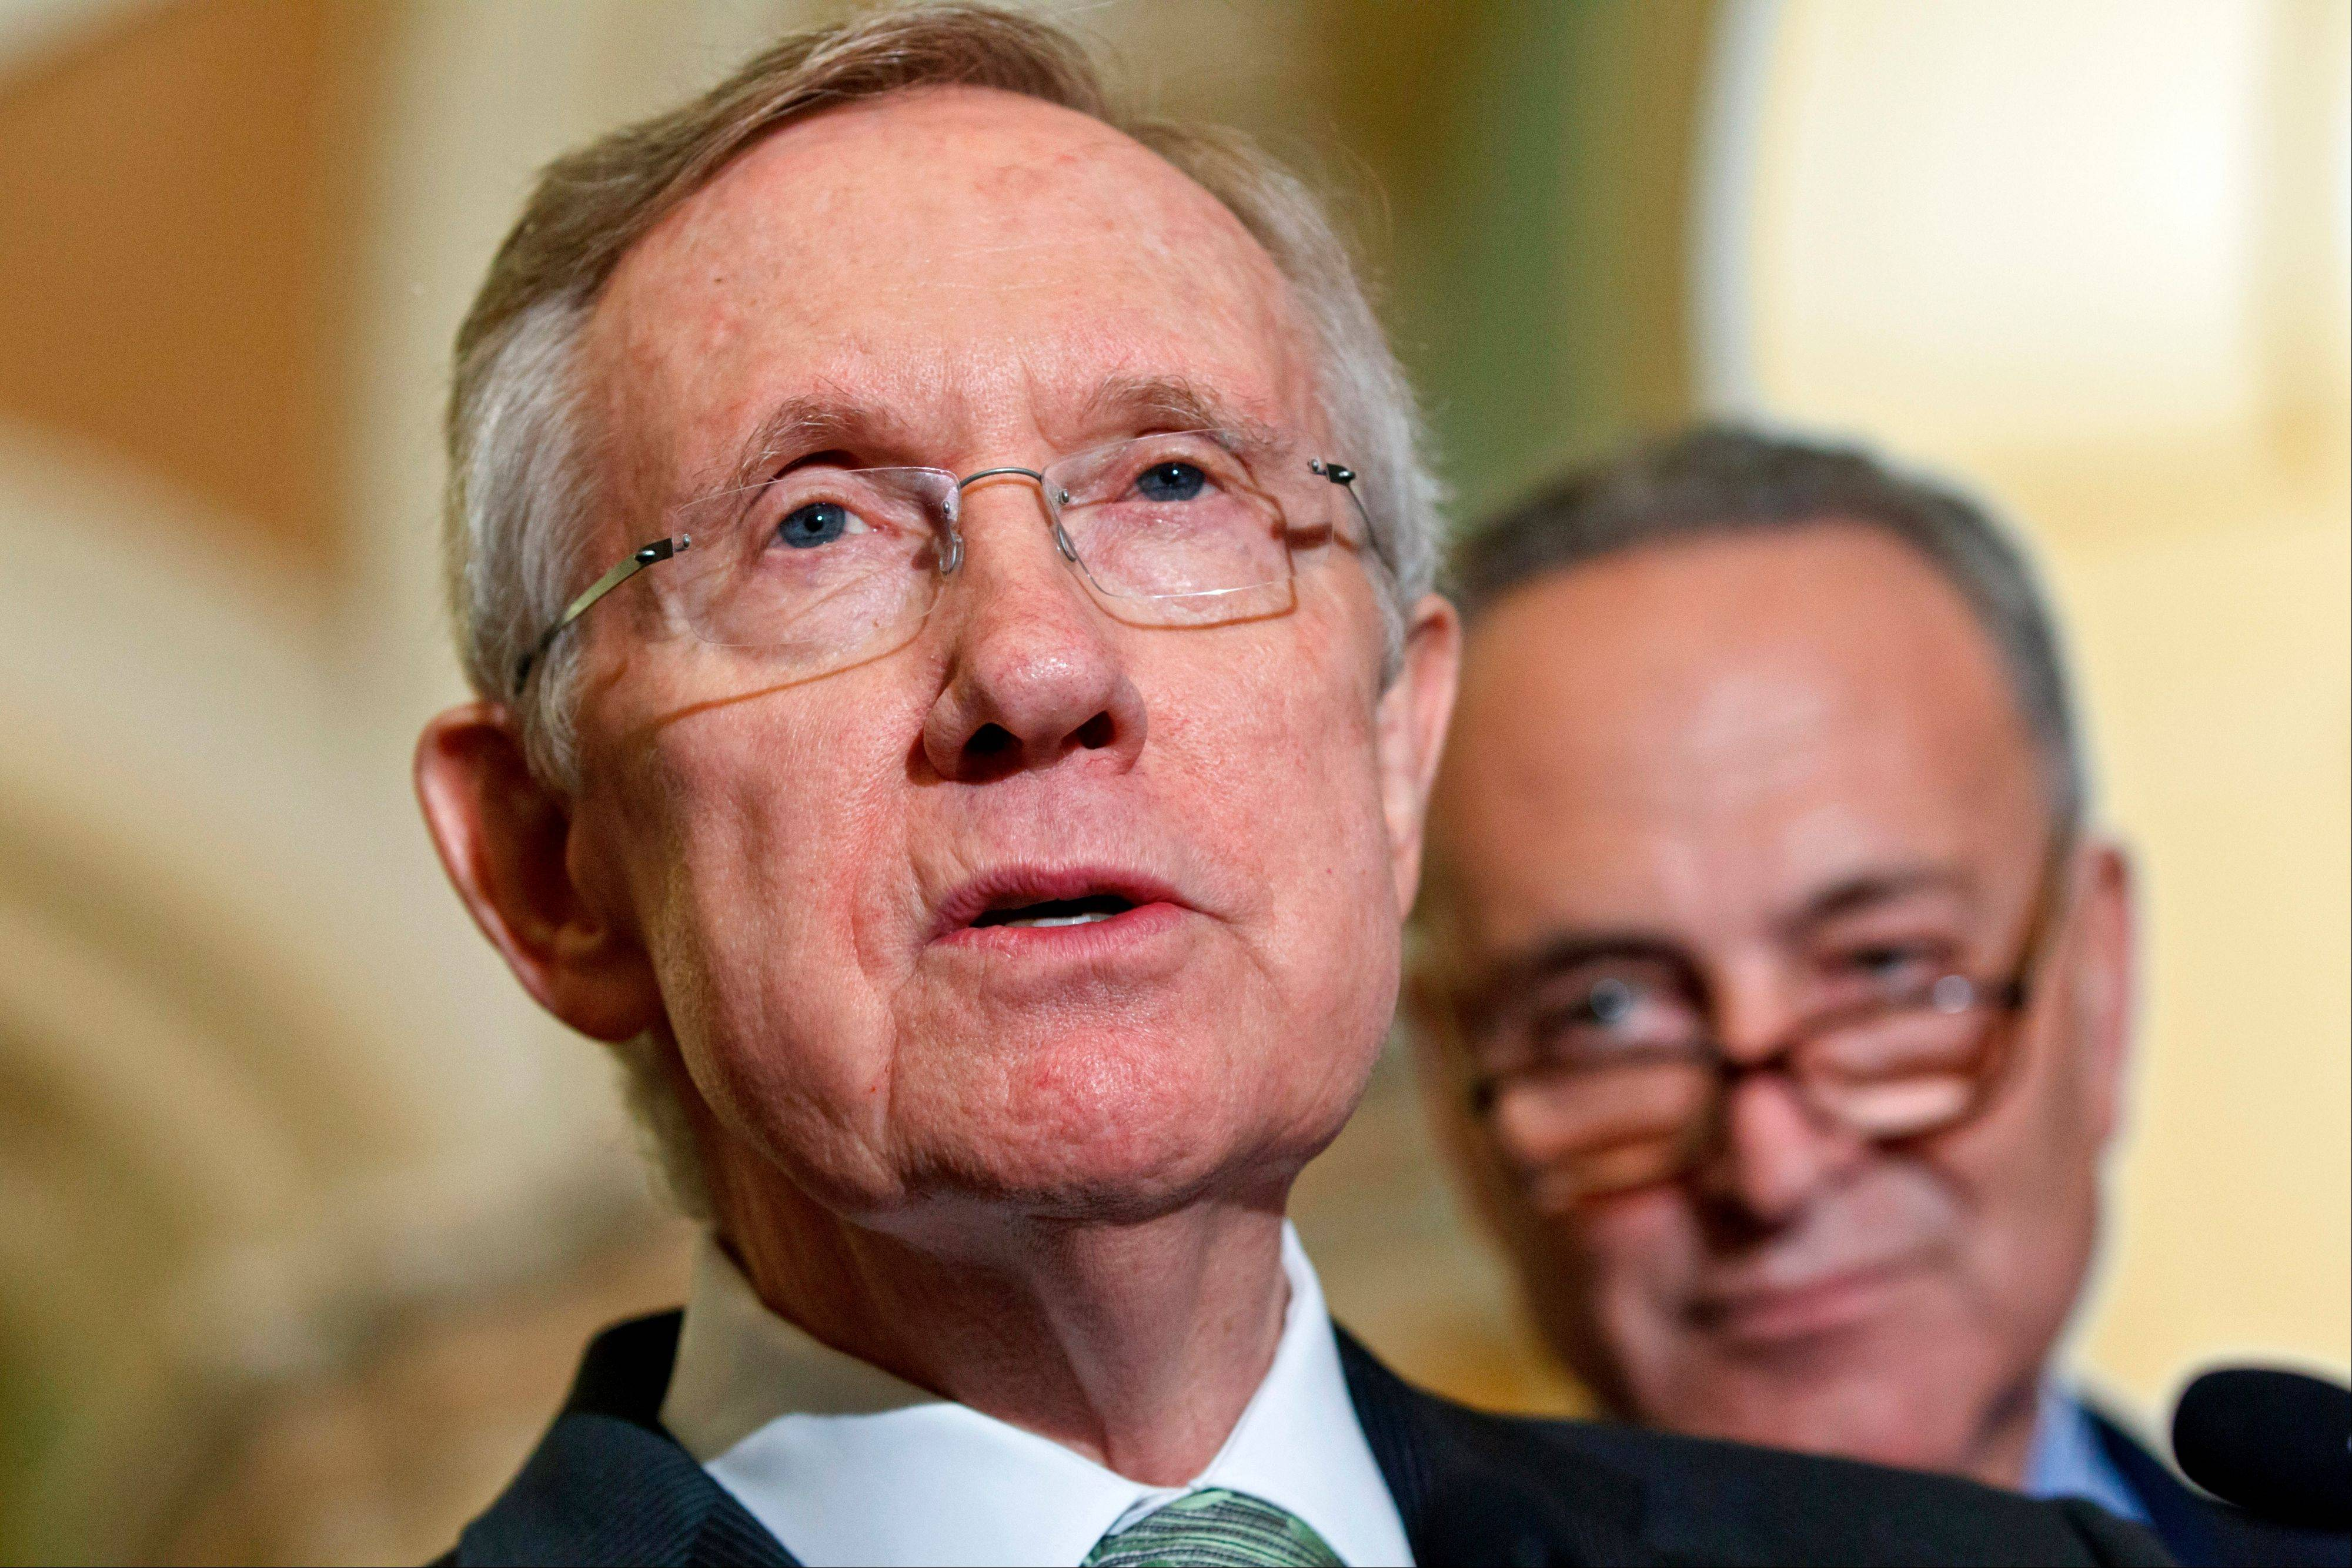 Senate Majority Leader Harry Reid discusses Senate passage of the Democrats� version of a yearlong tax cut extension bill by a near party-line vote Wednesday on Capitol Hill.